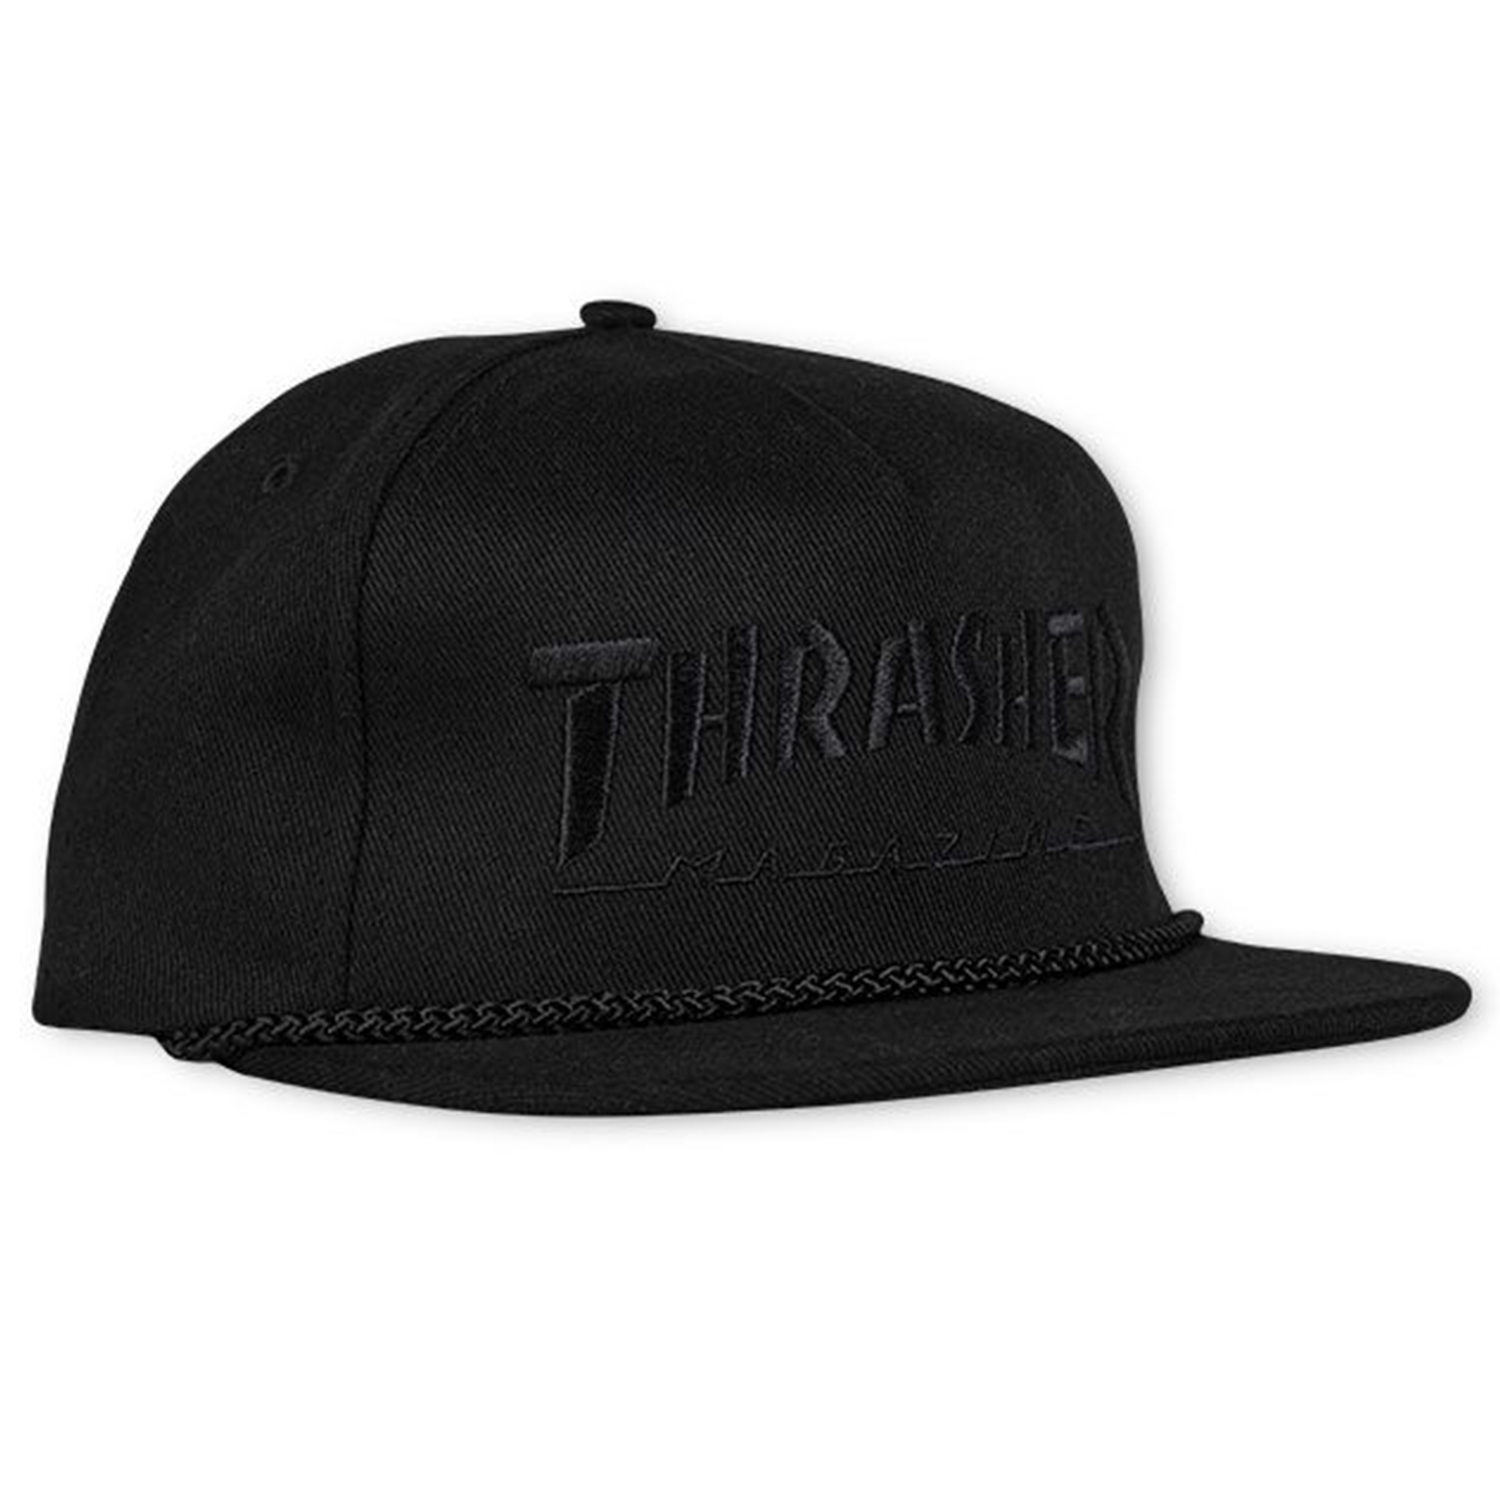 Gorra Thrasher Rope Black/Black